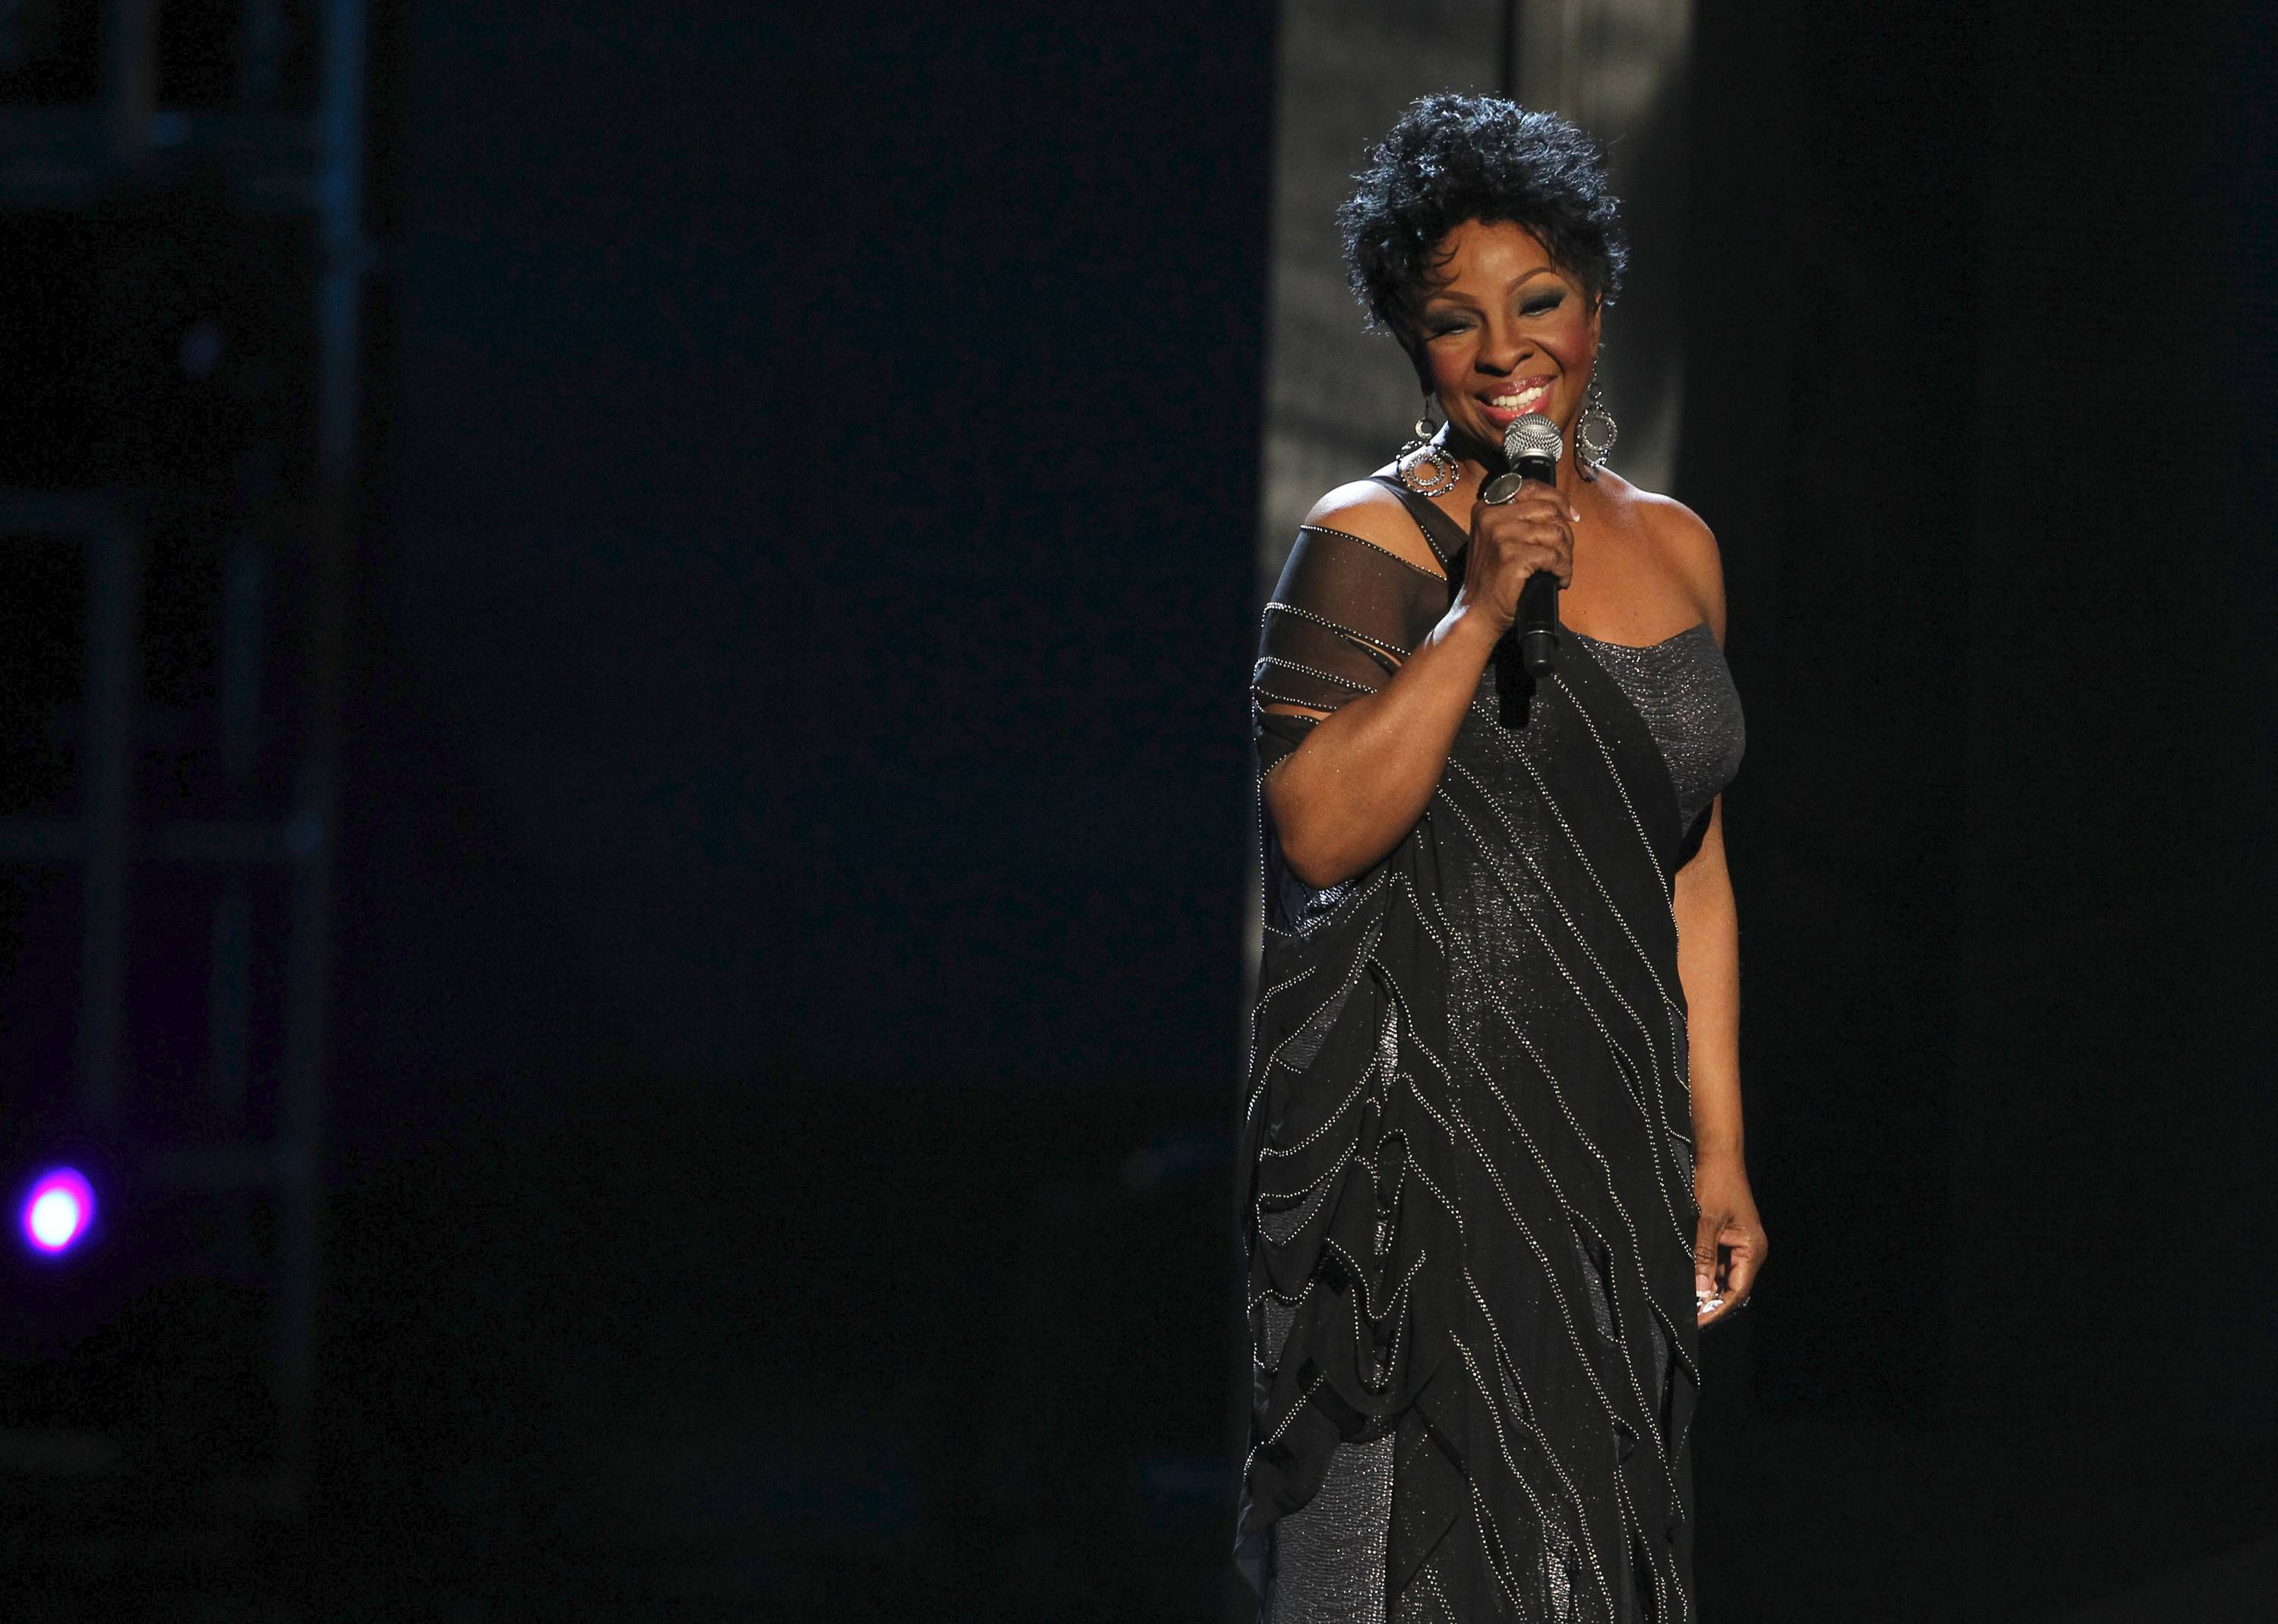 Gladys Knight performs with The Temptations Review featuring Dennis Edwards at the Chicago Theatre at 7:30 p.m. Friday, May 9.